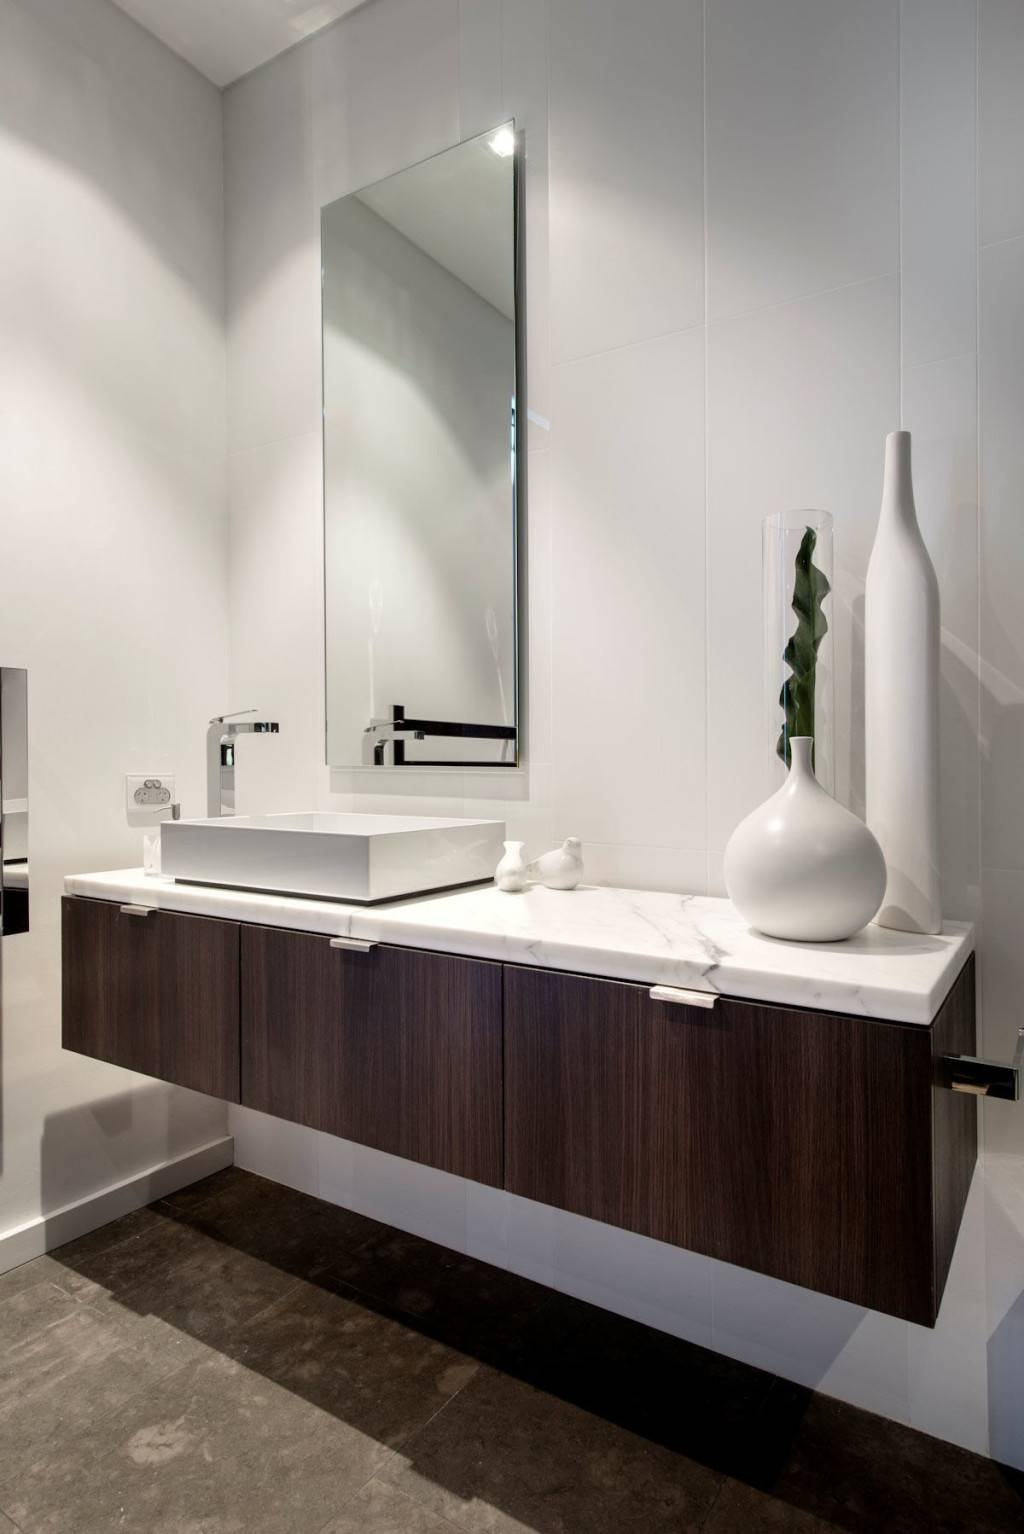 Archaic Decorating Ideas Using Rectangular Mirrors And Rectangular Pertaining To Silver Rectangular Mirrors (View 3 of 25)